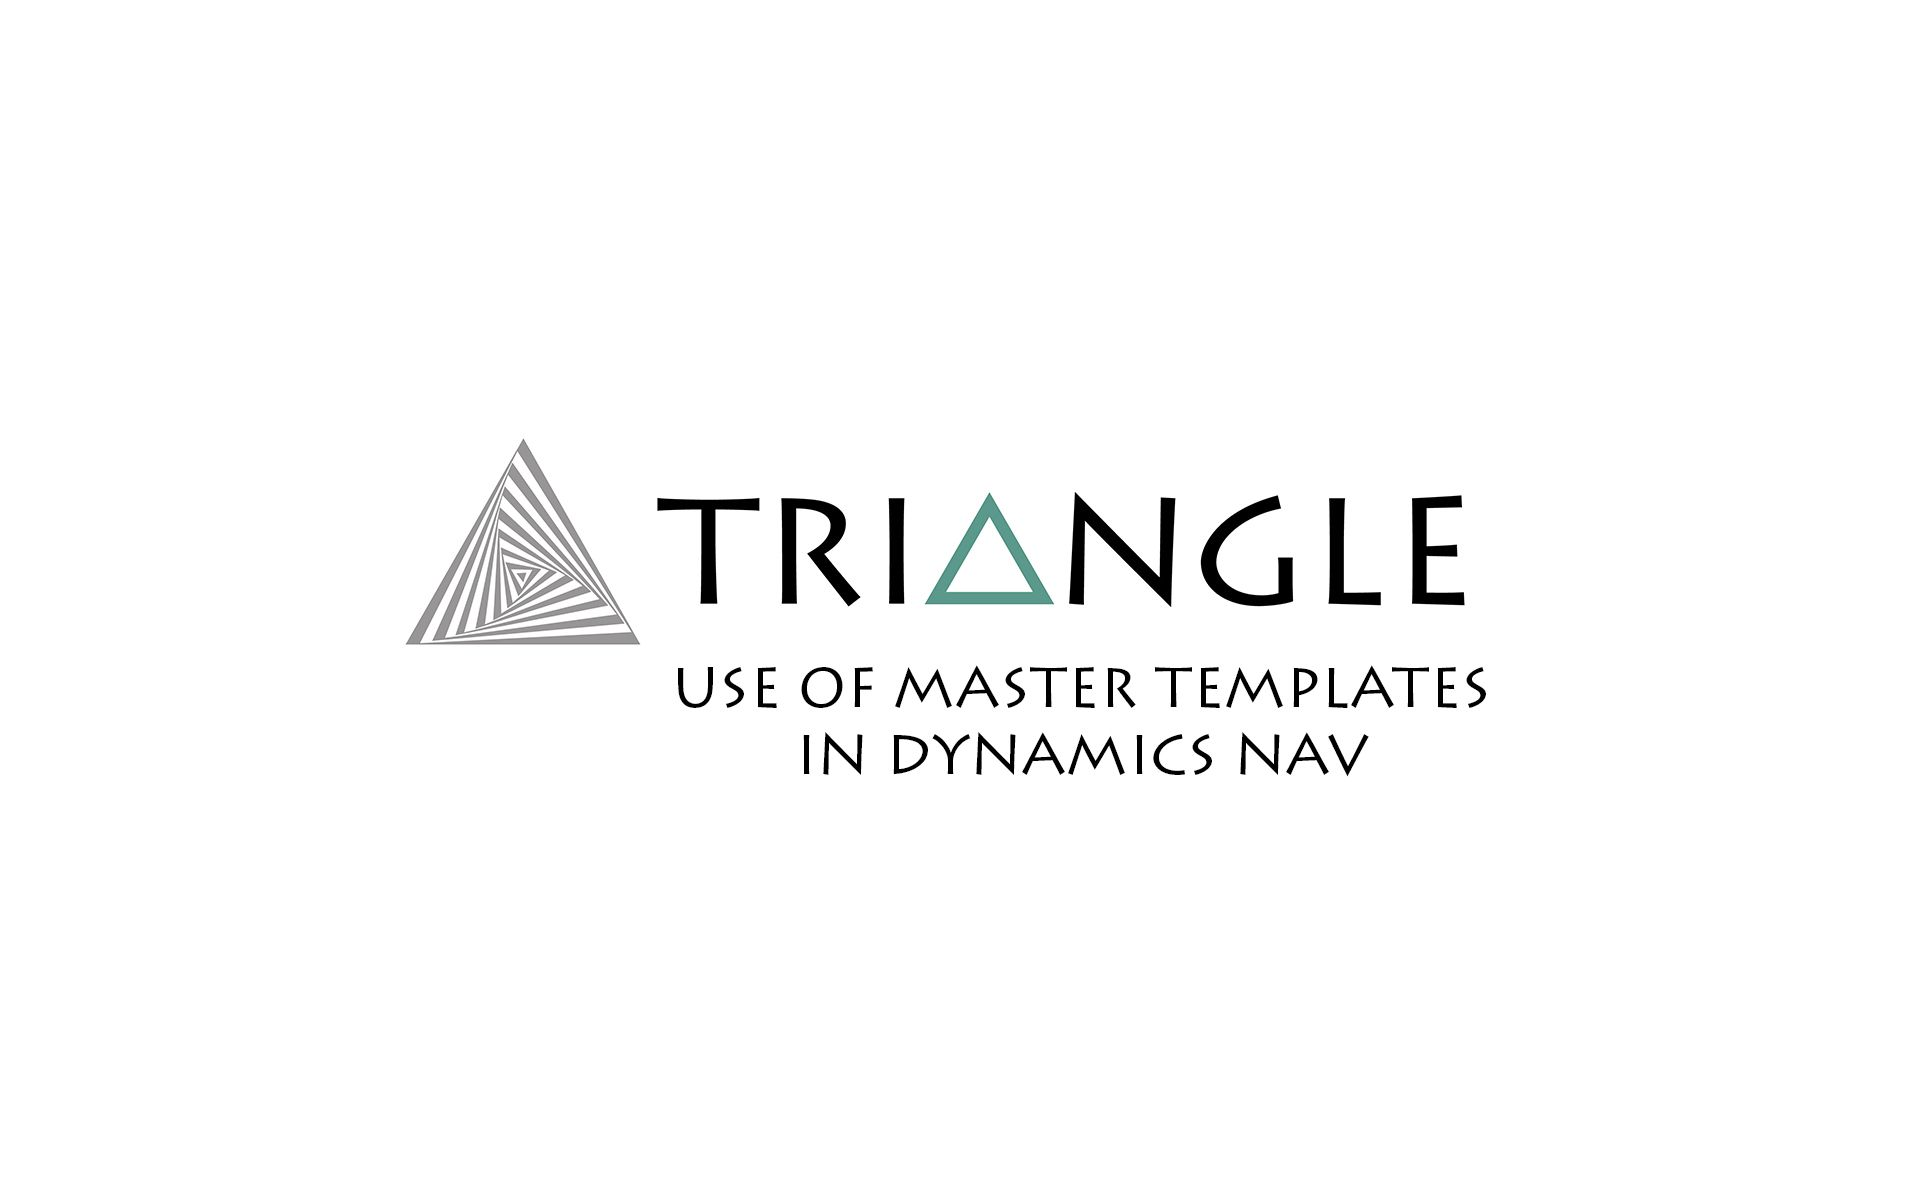 Use of master templates in Dynamics NAV